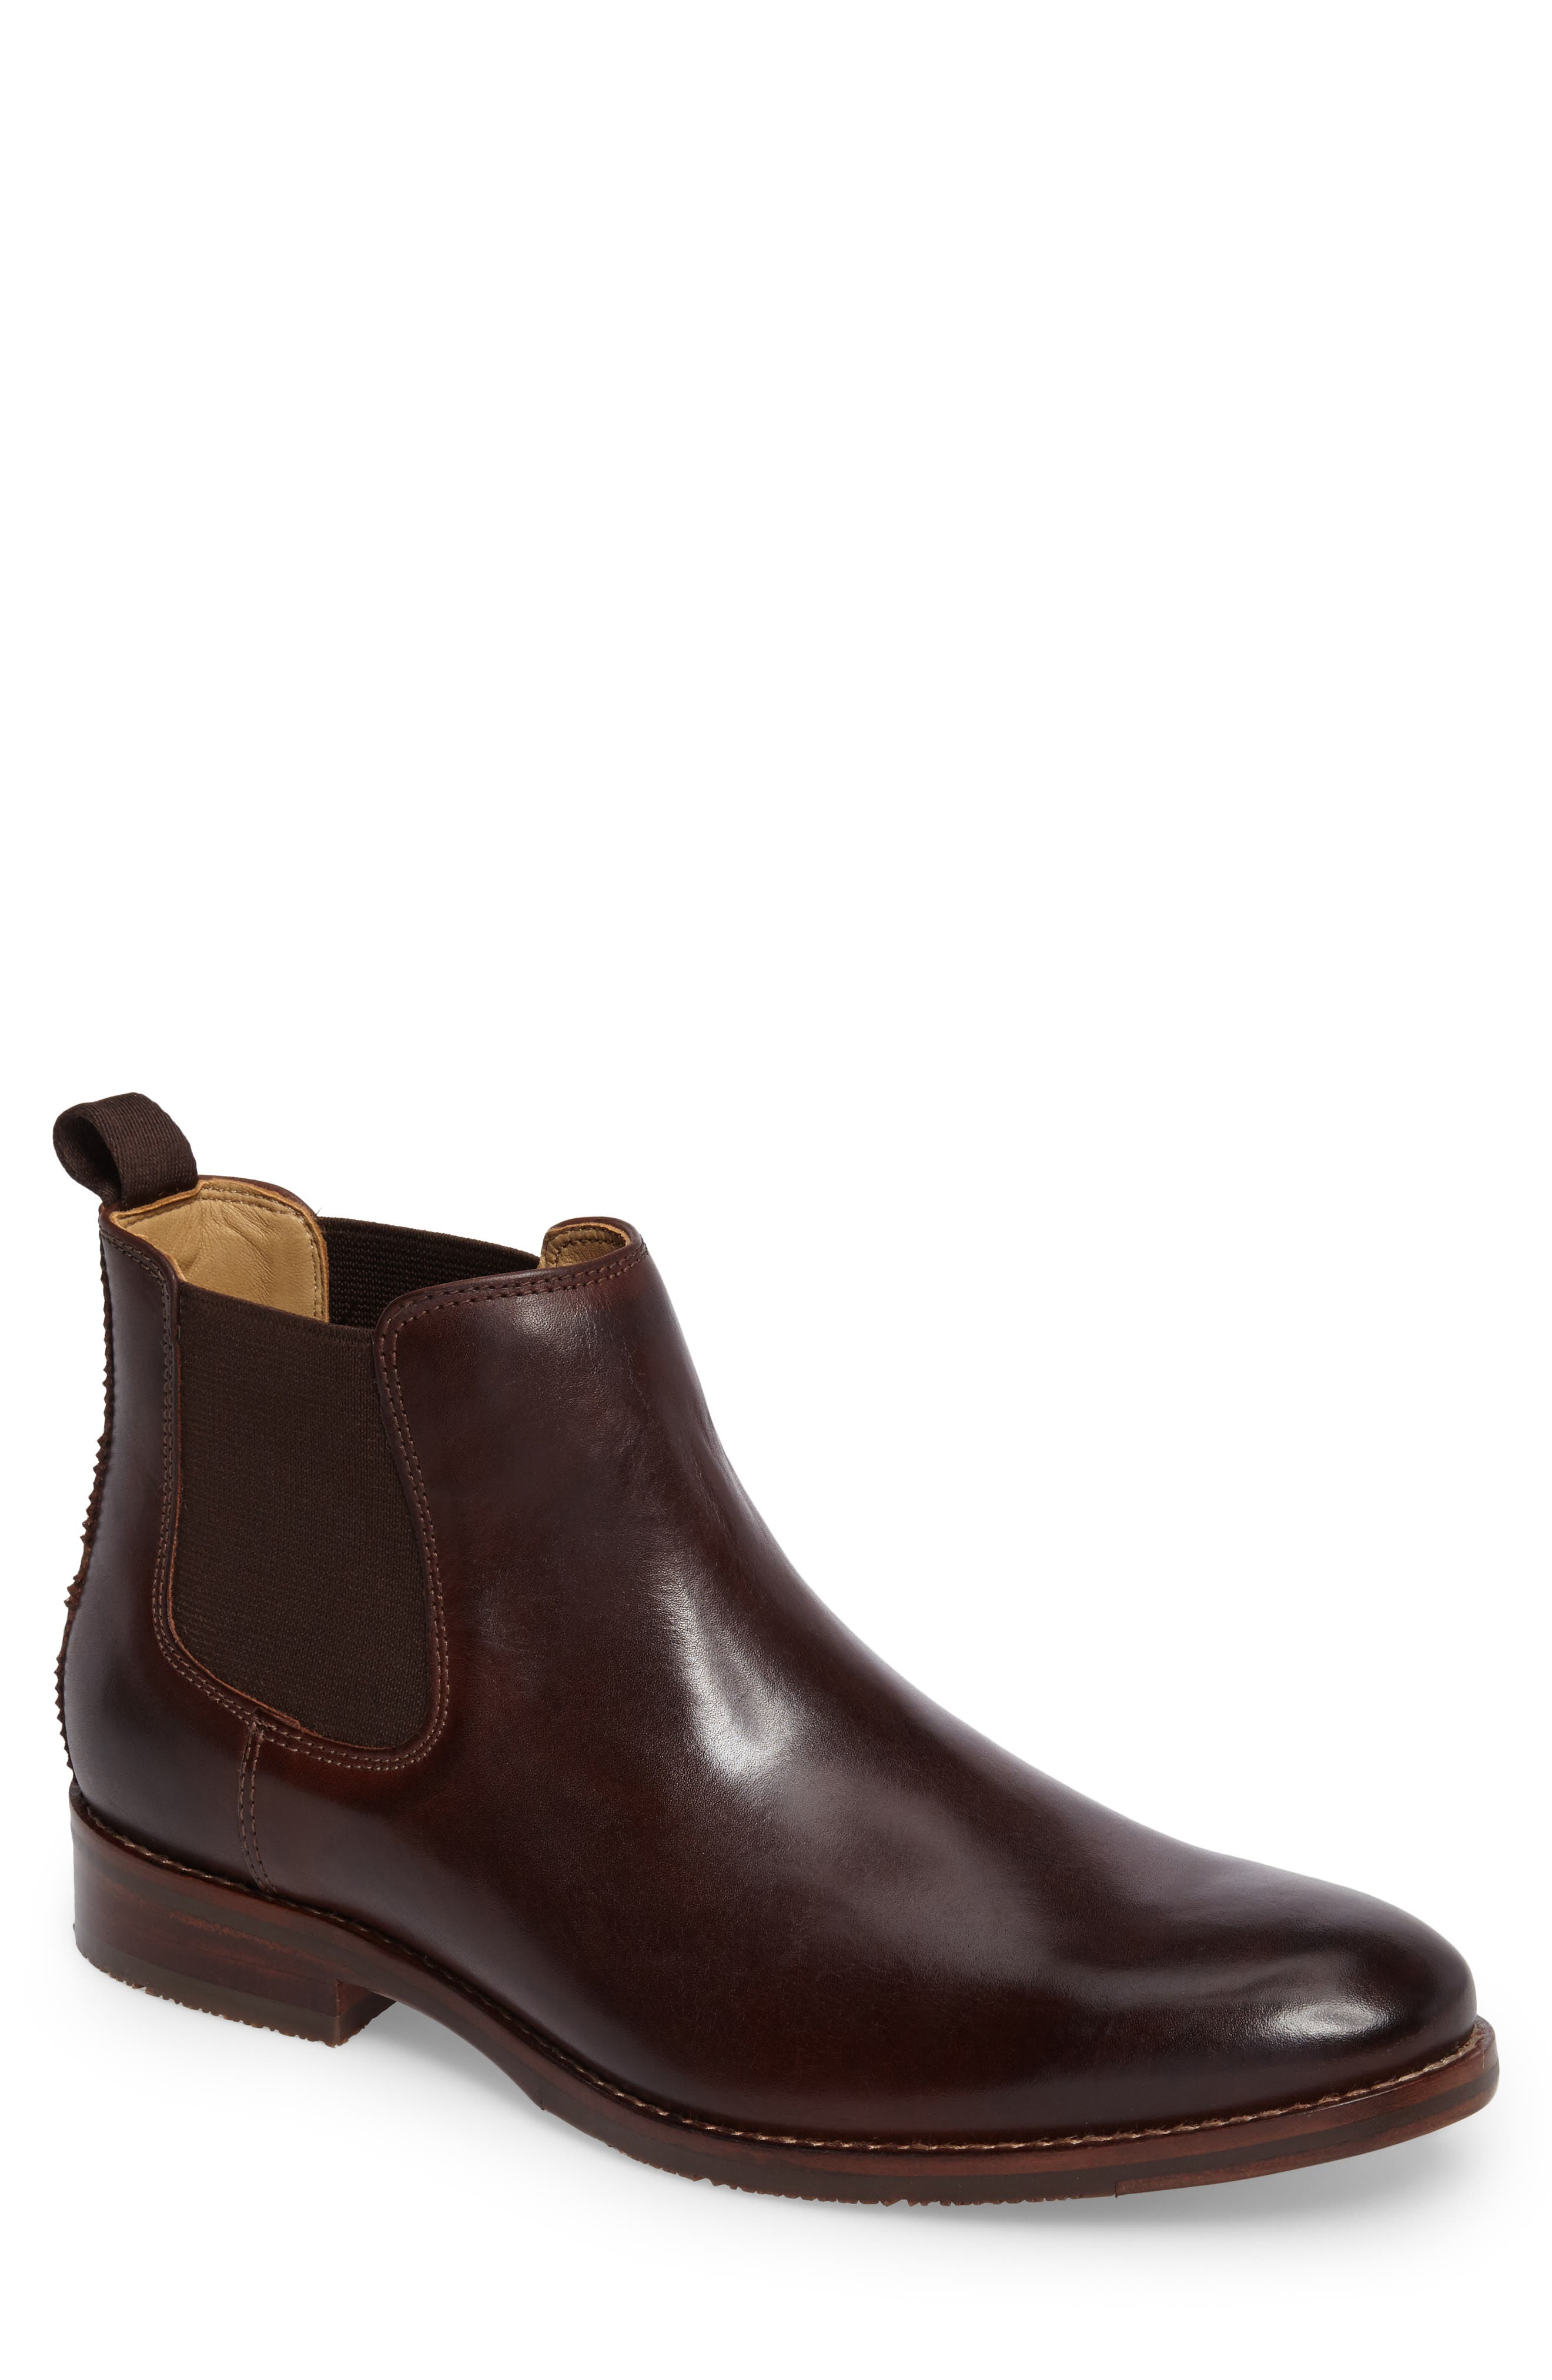 Johnston & Murphy Garner Chelsea Boot (Men)